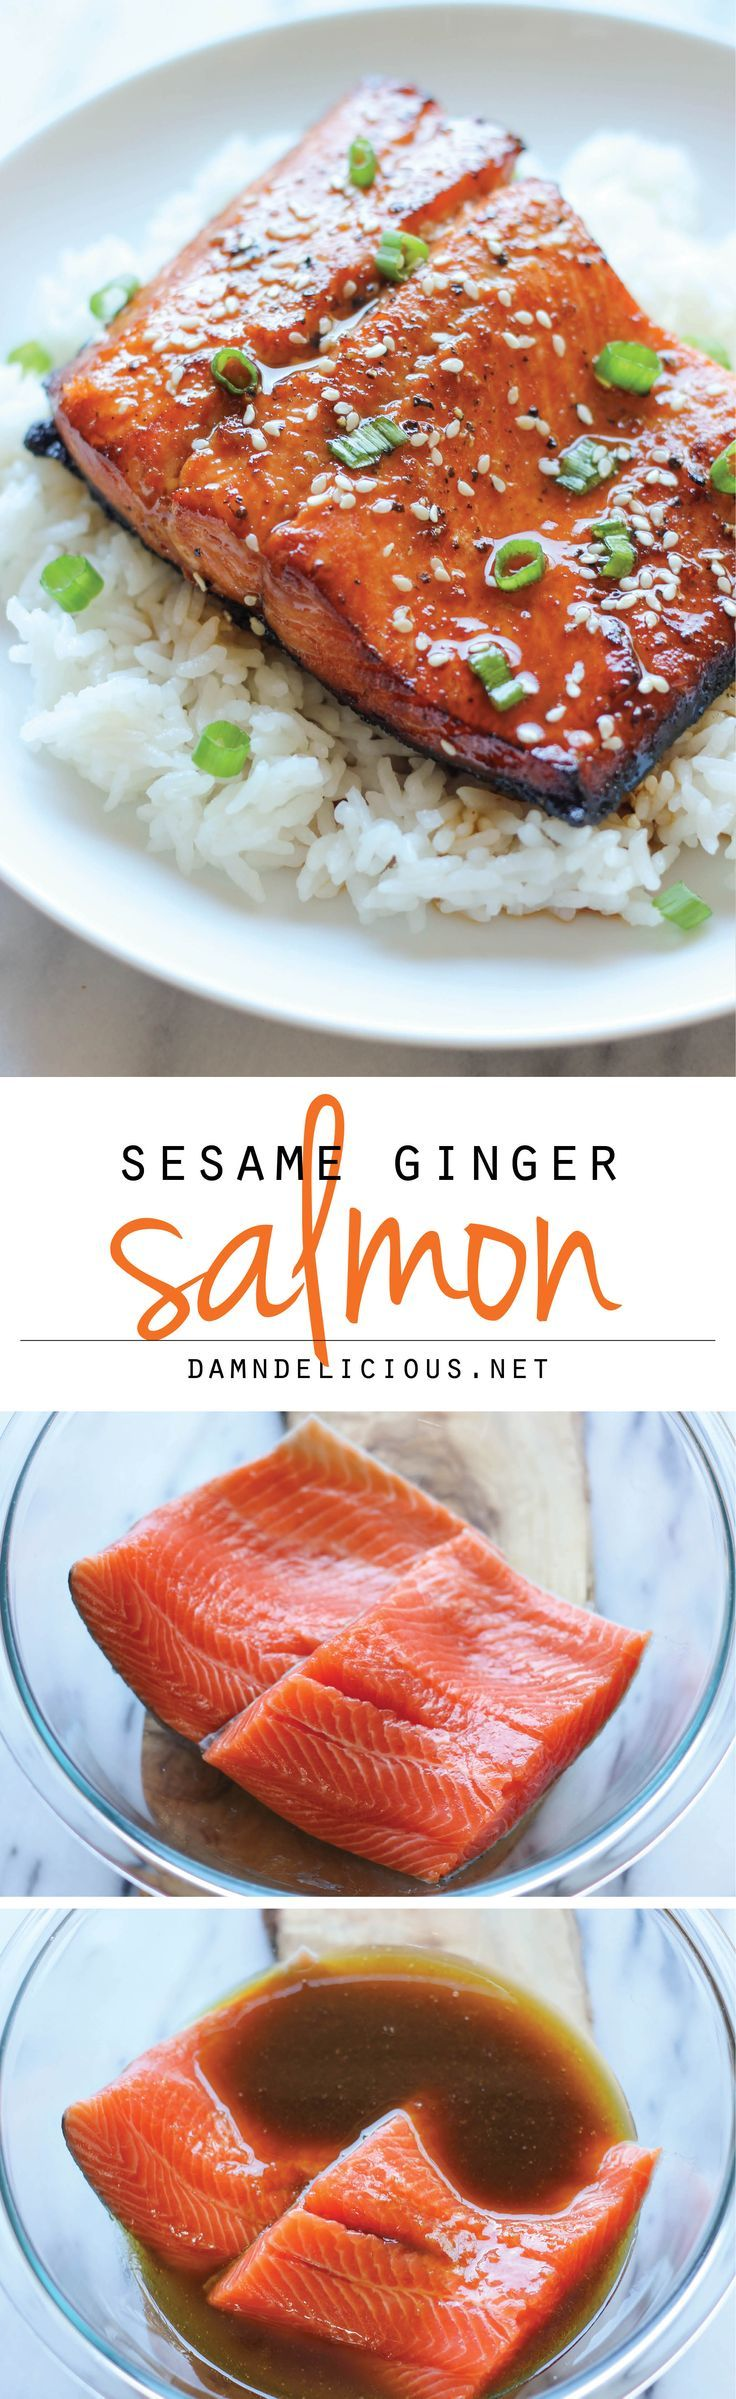 Sesame Ginger Salmon -  {Needs a few tweaks for paleo}. A super easy salmon dish bursting with so much flavor, and it's hearty-healthy too!